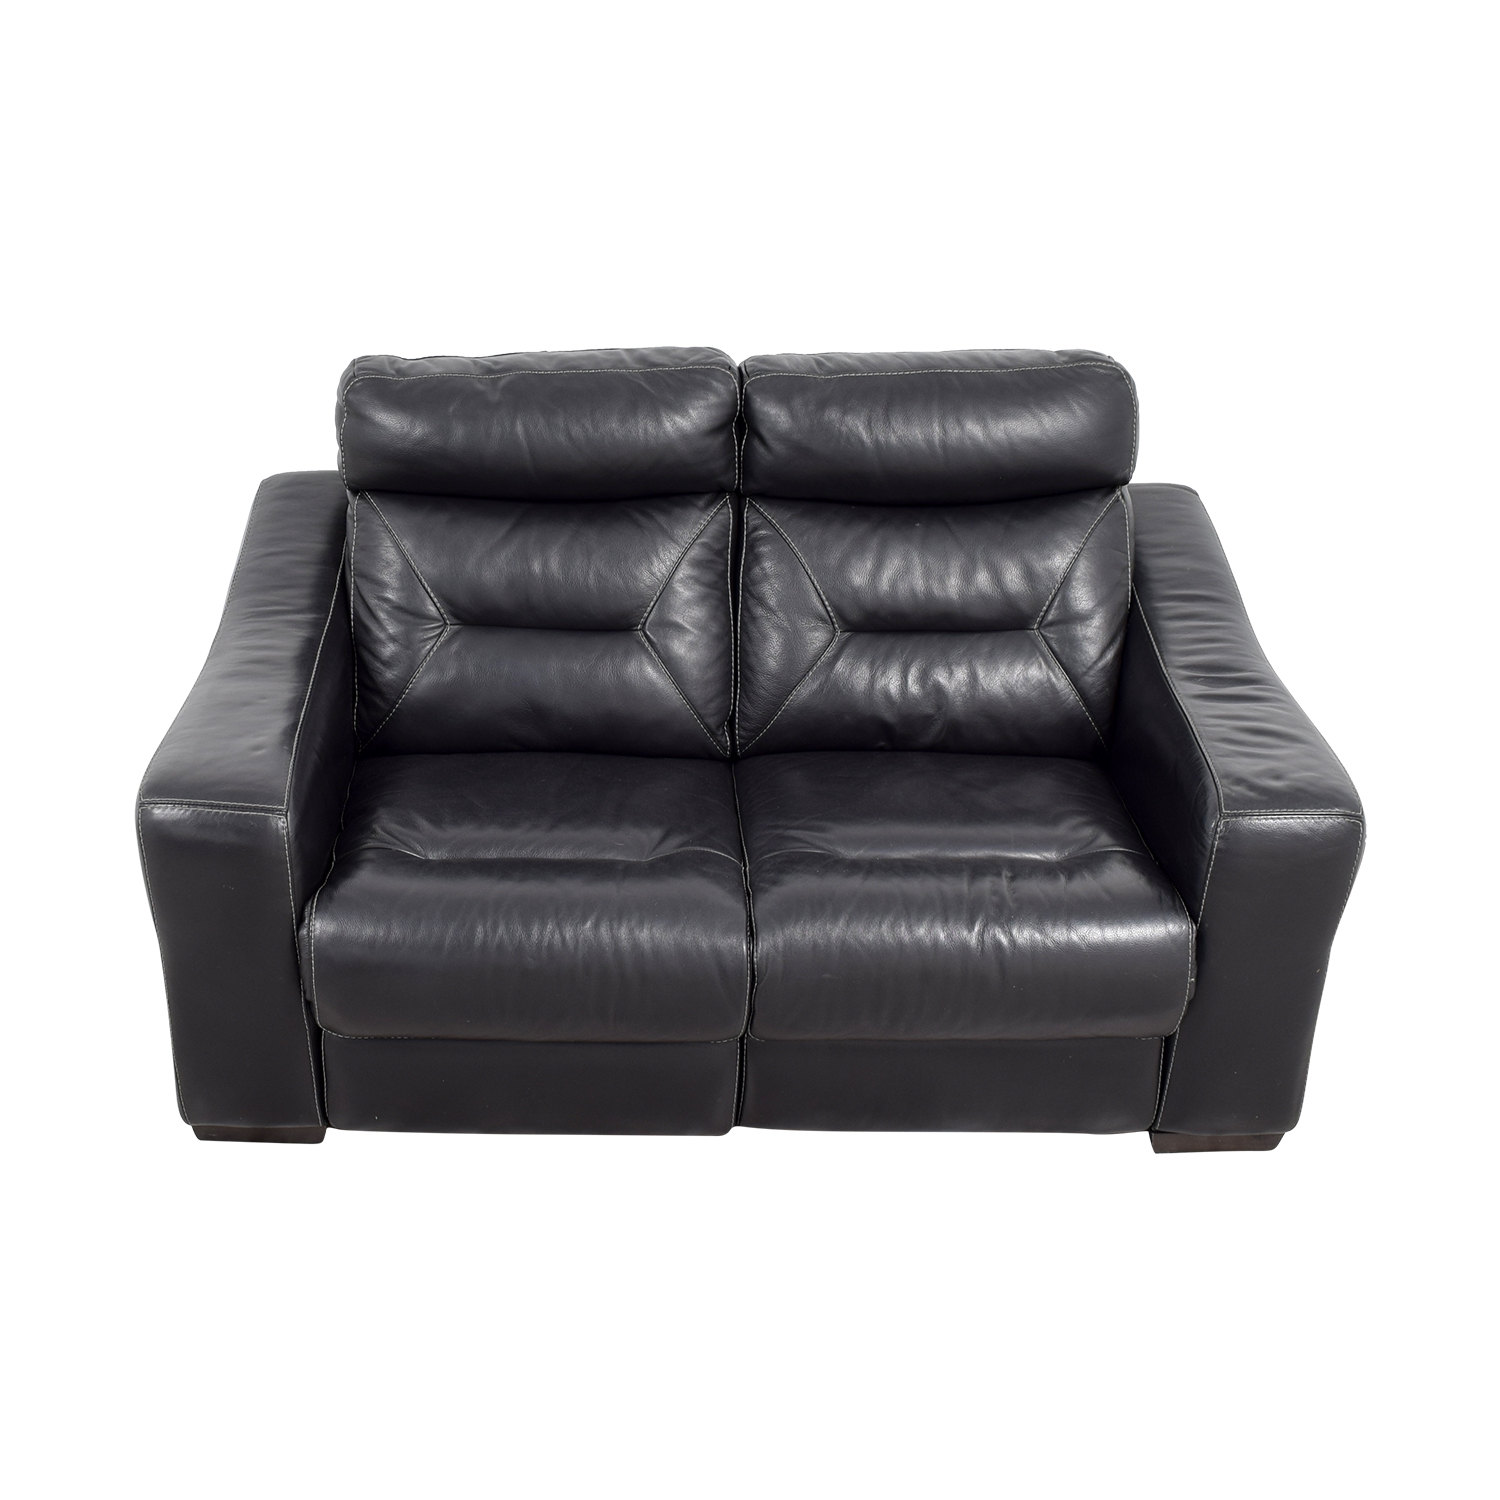 buy Macys Black Leather Recliner Love Seat Macys